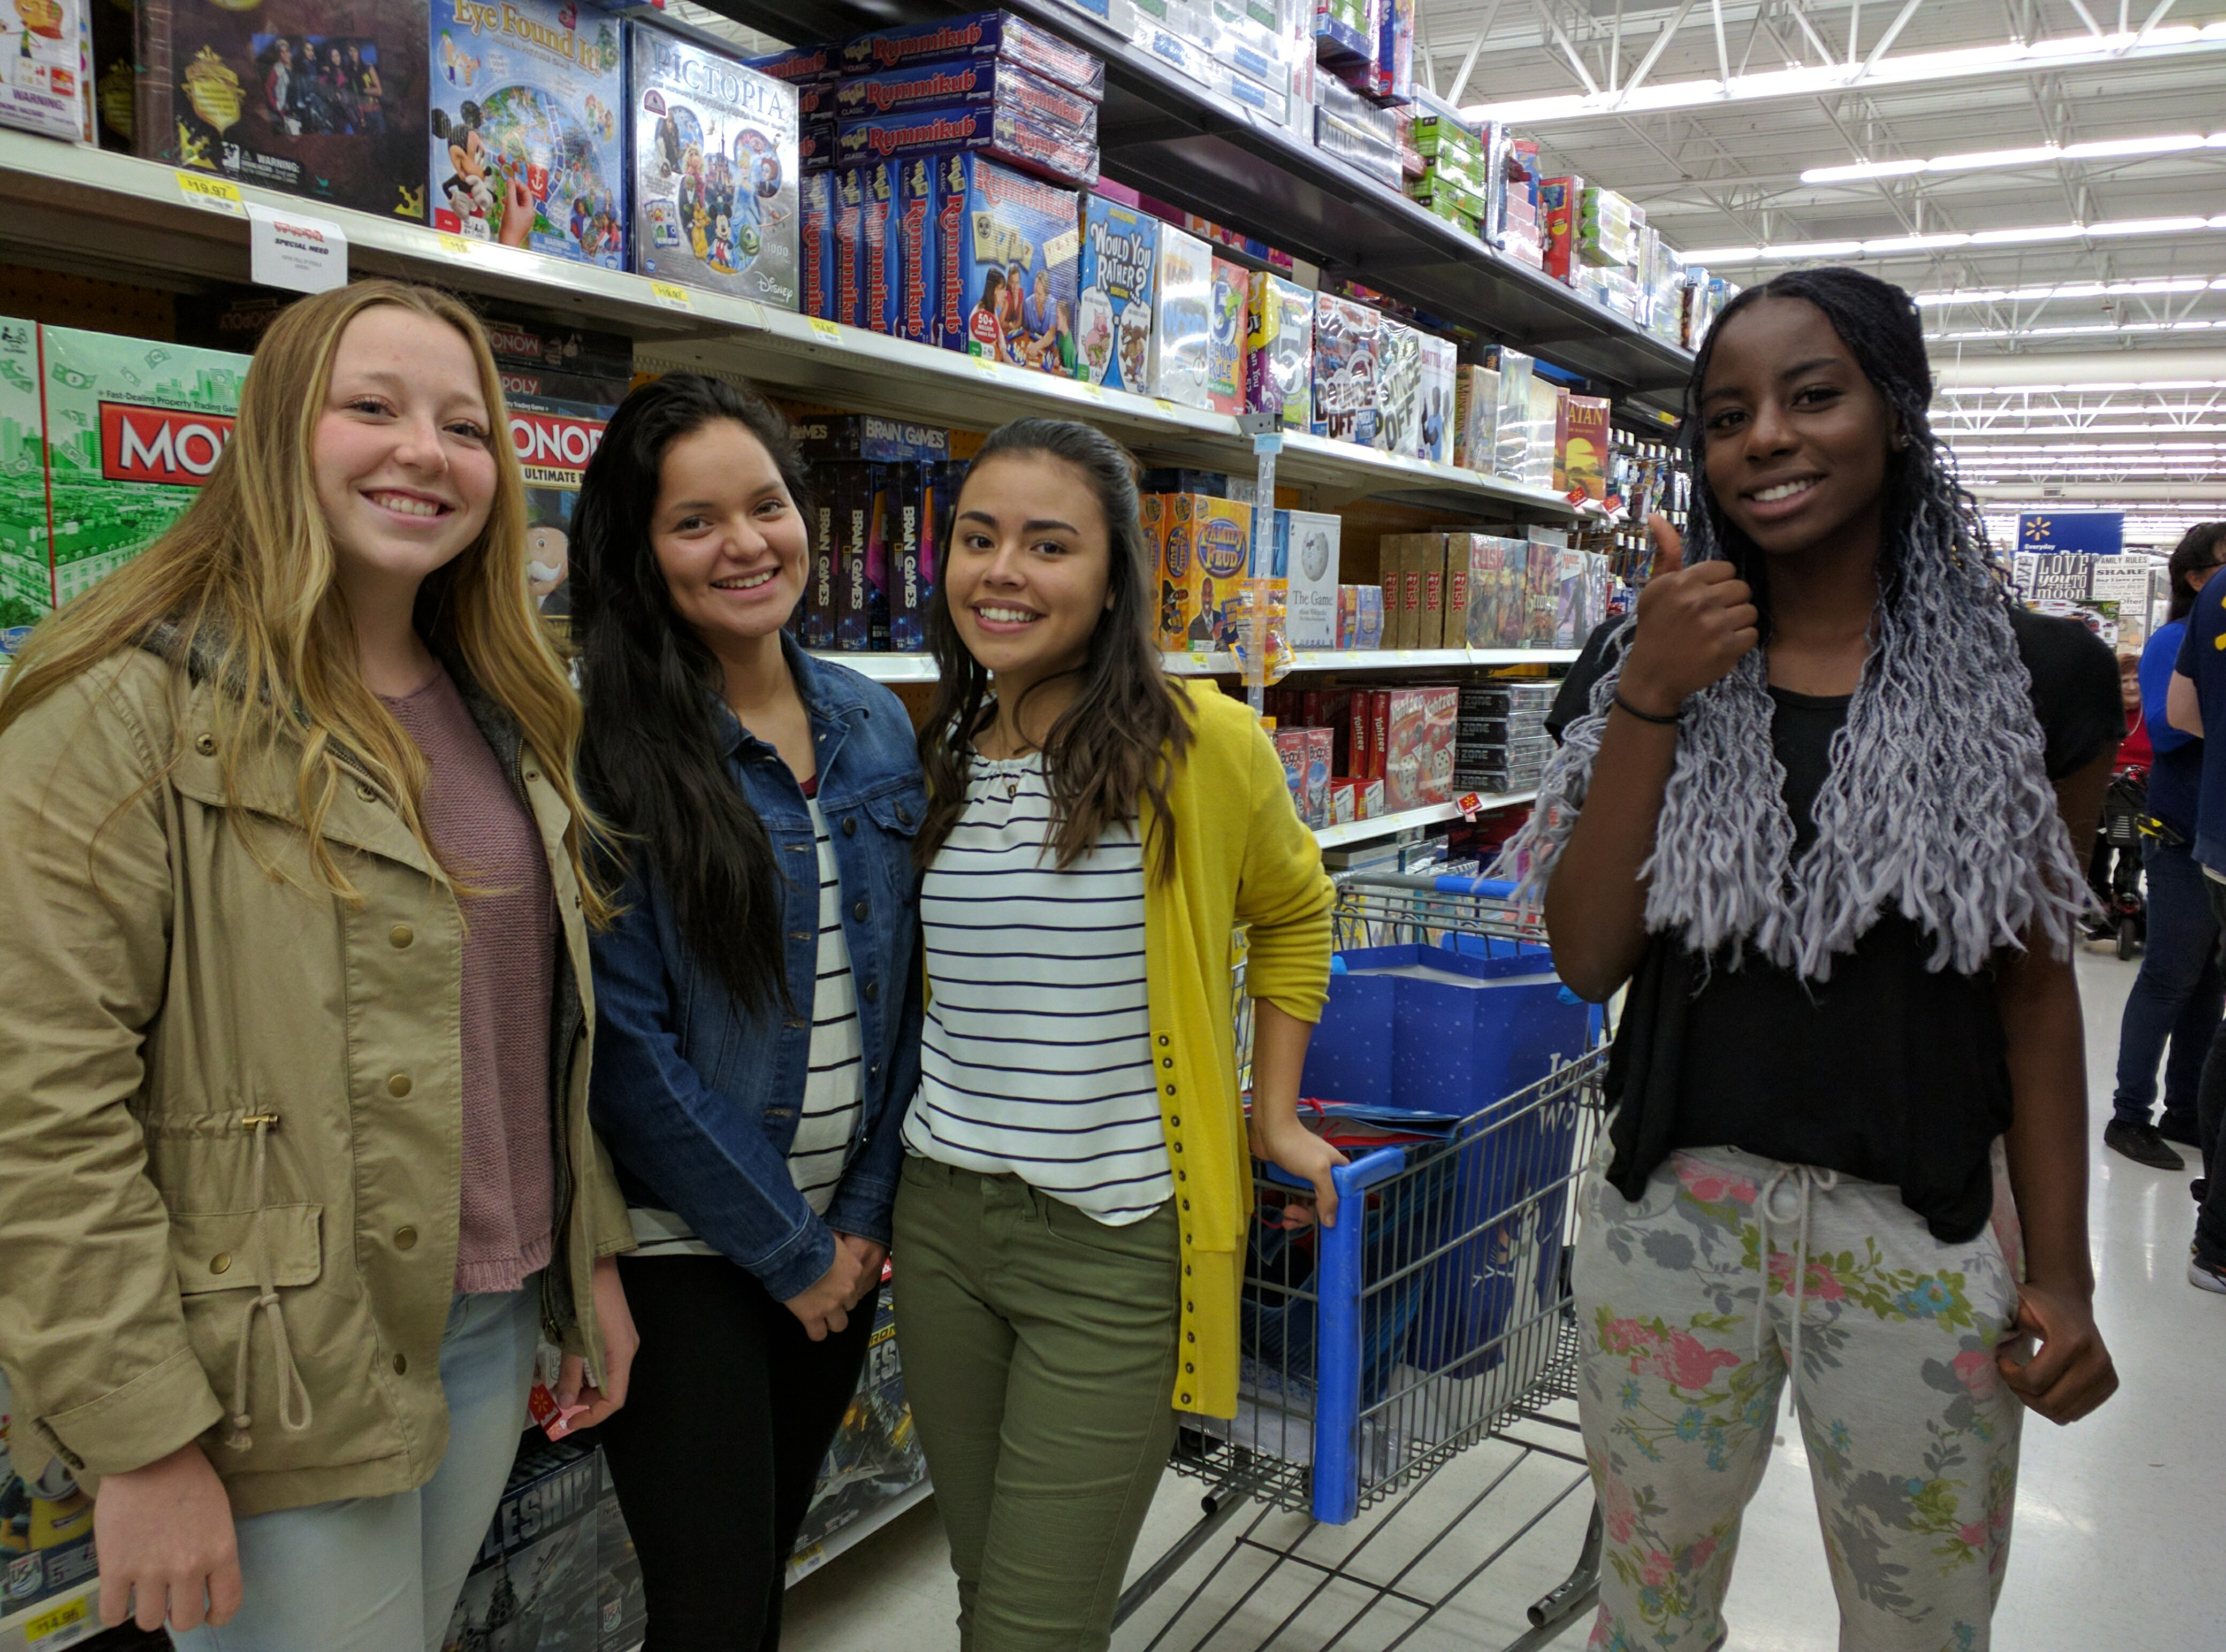 Dixie High School students shop for the school's Angel Tree project, St. George, Utah, Dec. 12, 2016 | Photo by Joseph Witham, St. George News